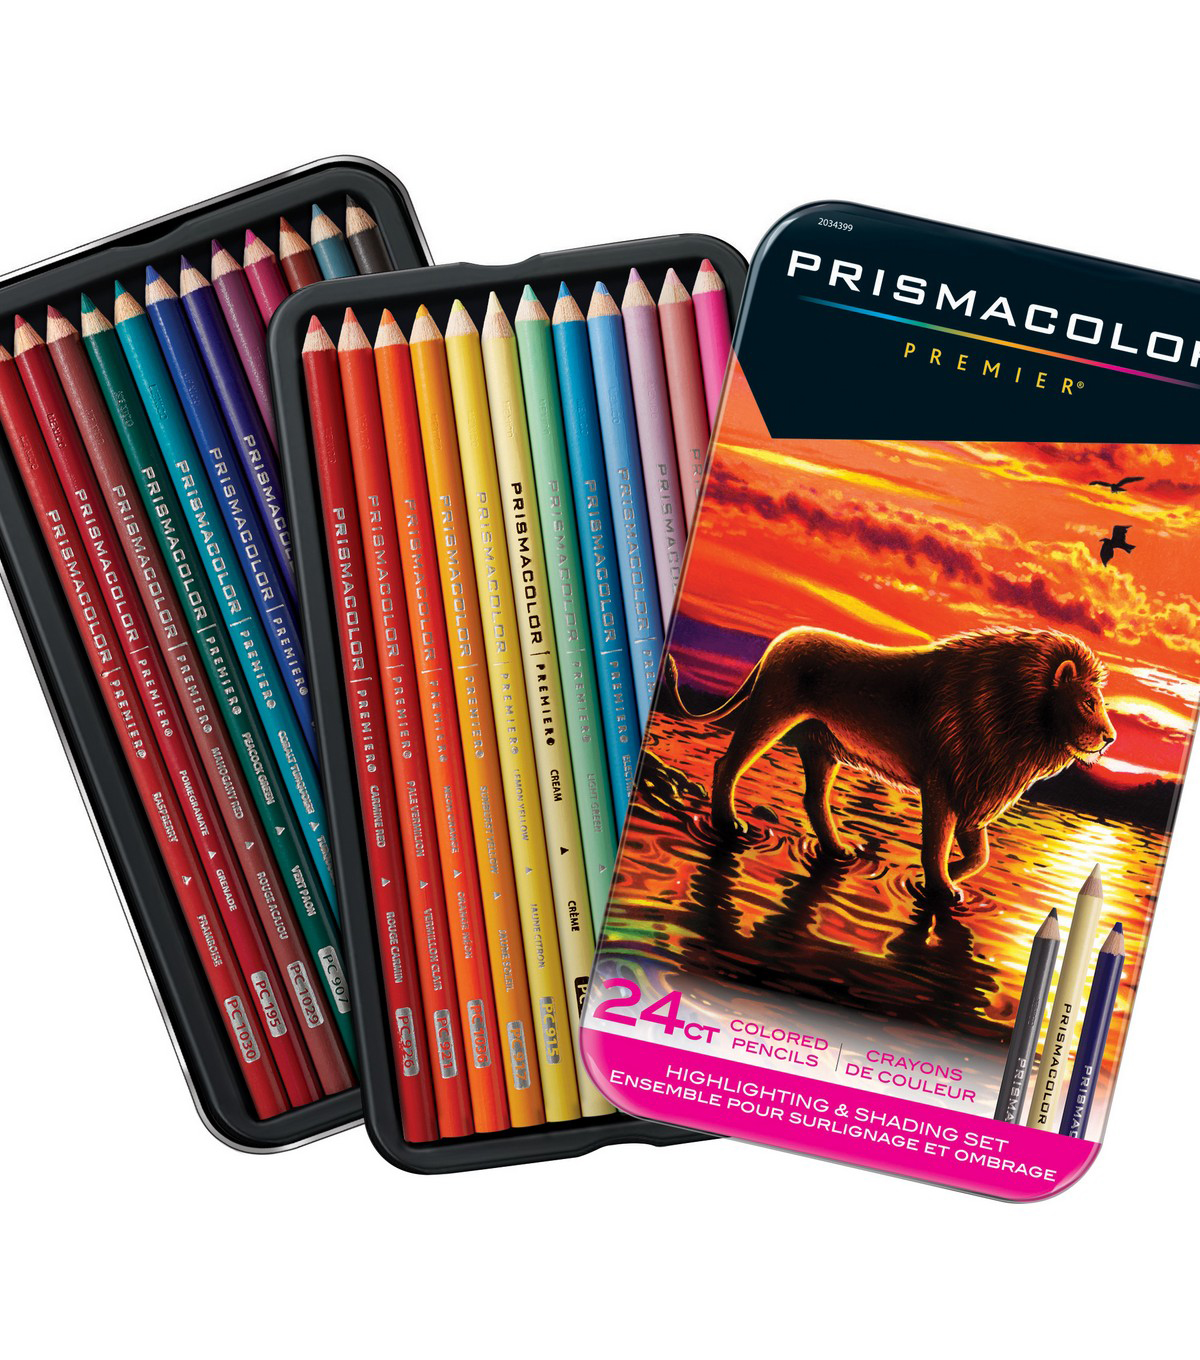 Prismacolor Premier Colored Pencil Highlighting & Shading Set